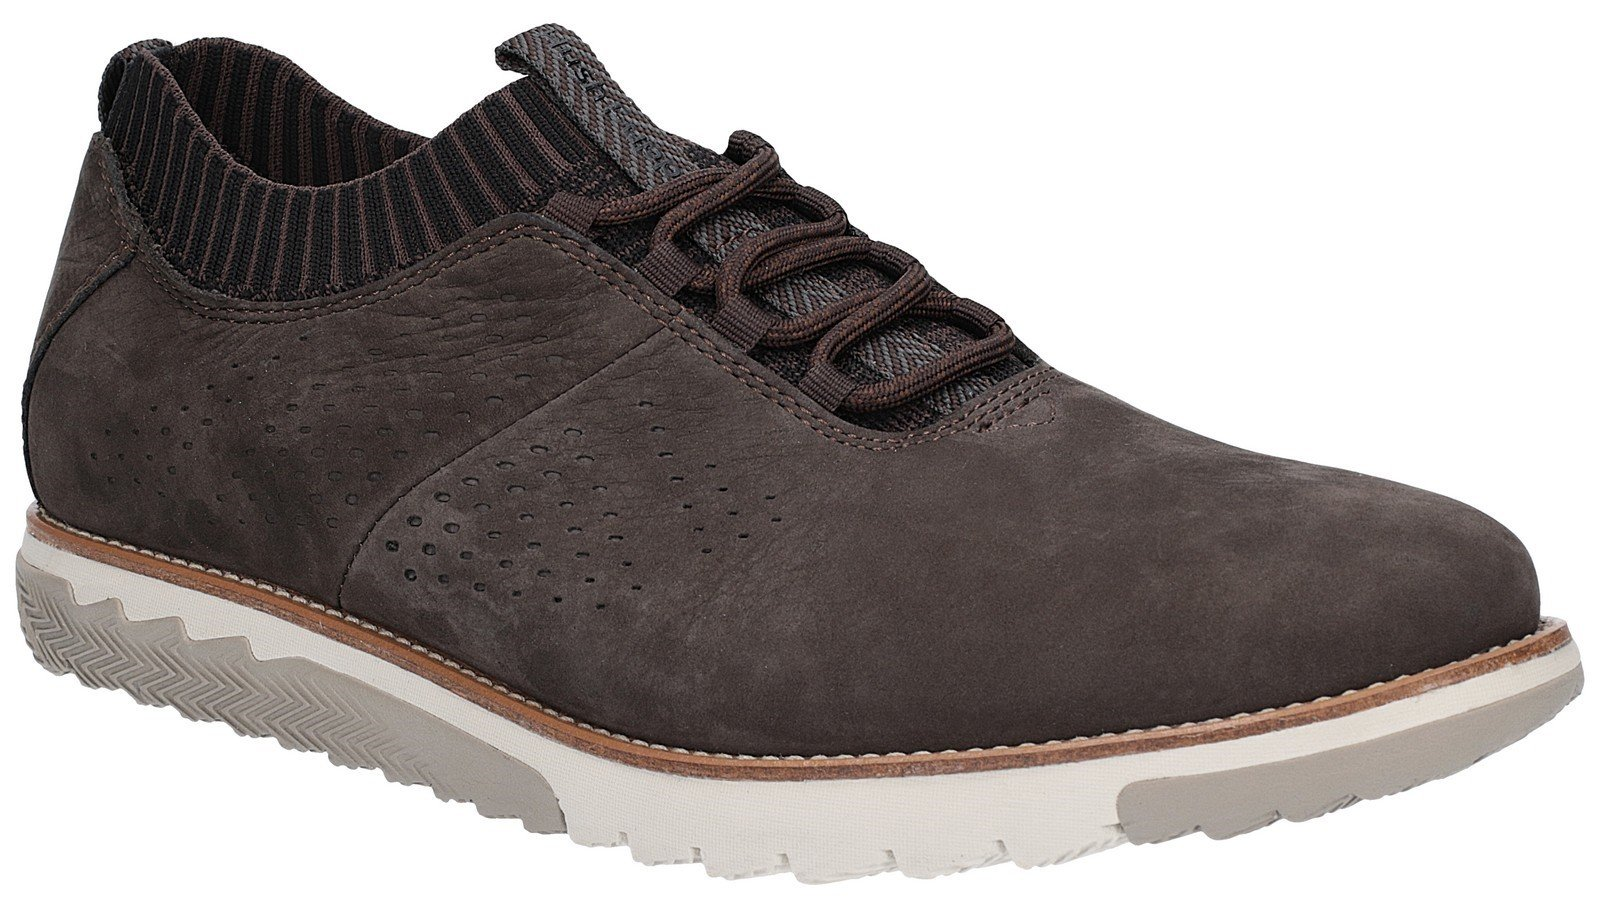 Hush Puppies Men's Expert Knit Lace Up Trainer Various Colours 27360 - Off Black 7